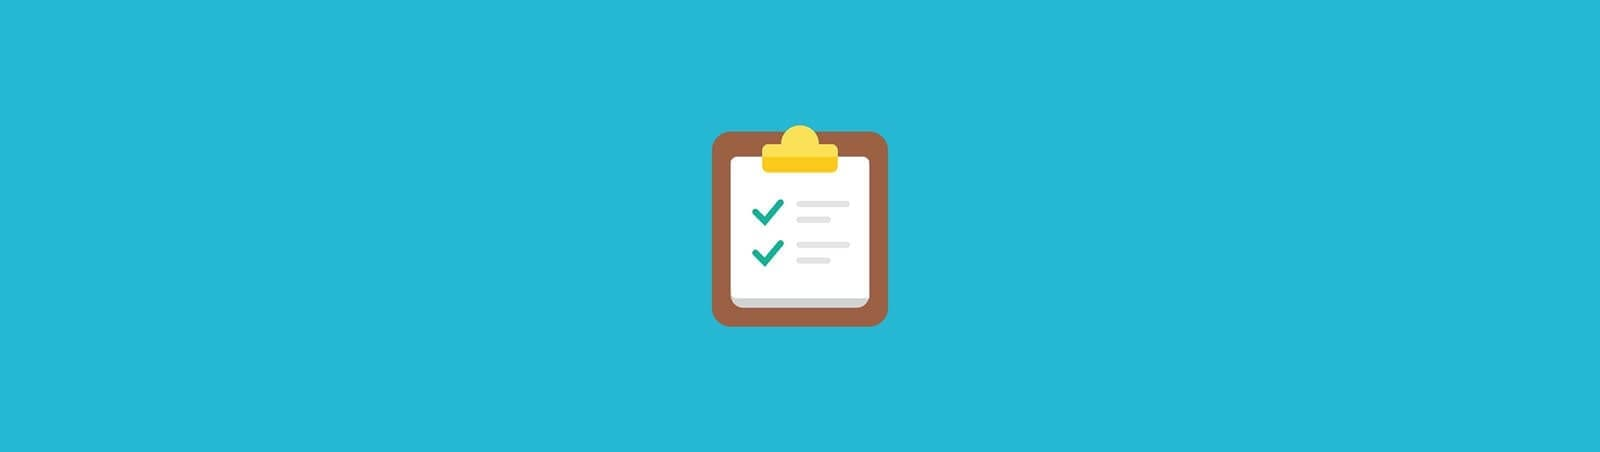 Onboarding Checklist cover photo